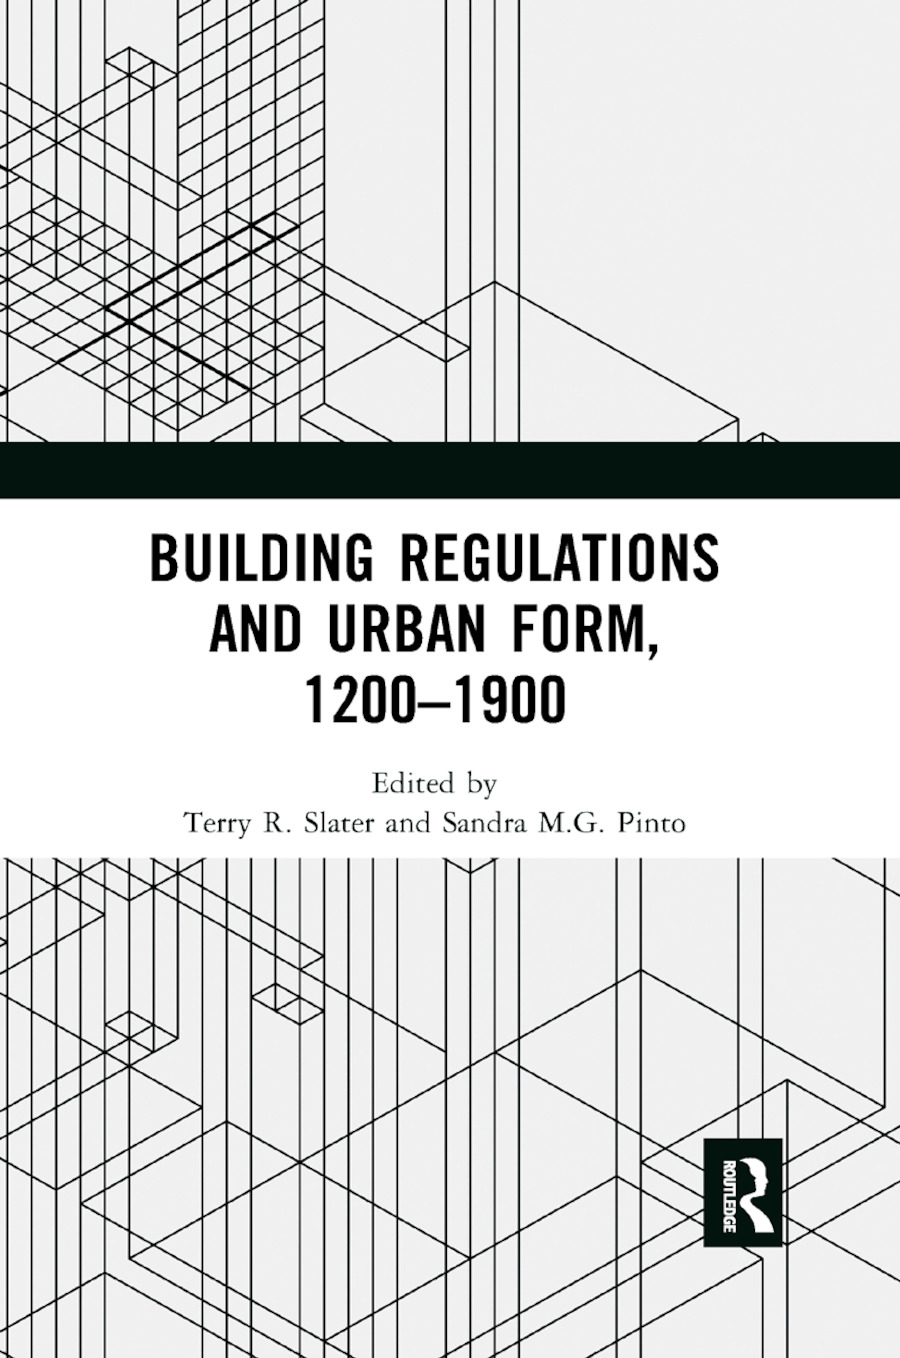 Building Regulations and Urban Form, 1200-1900 book cover